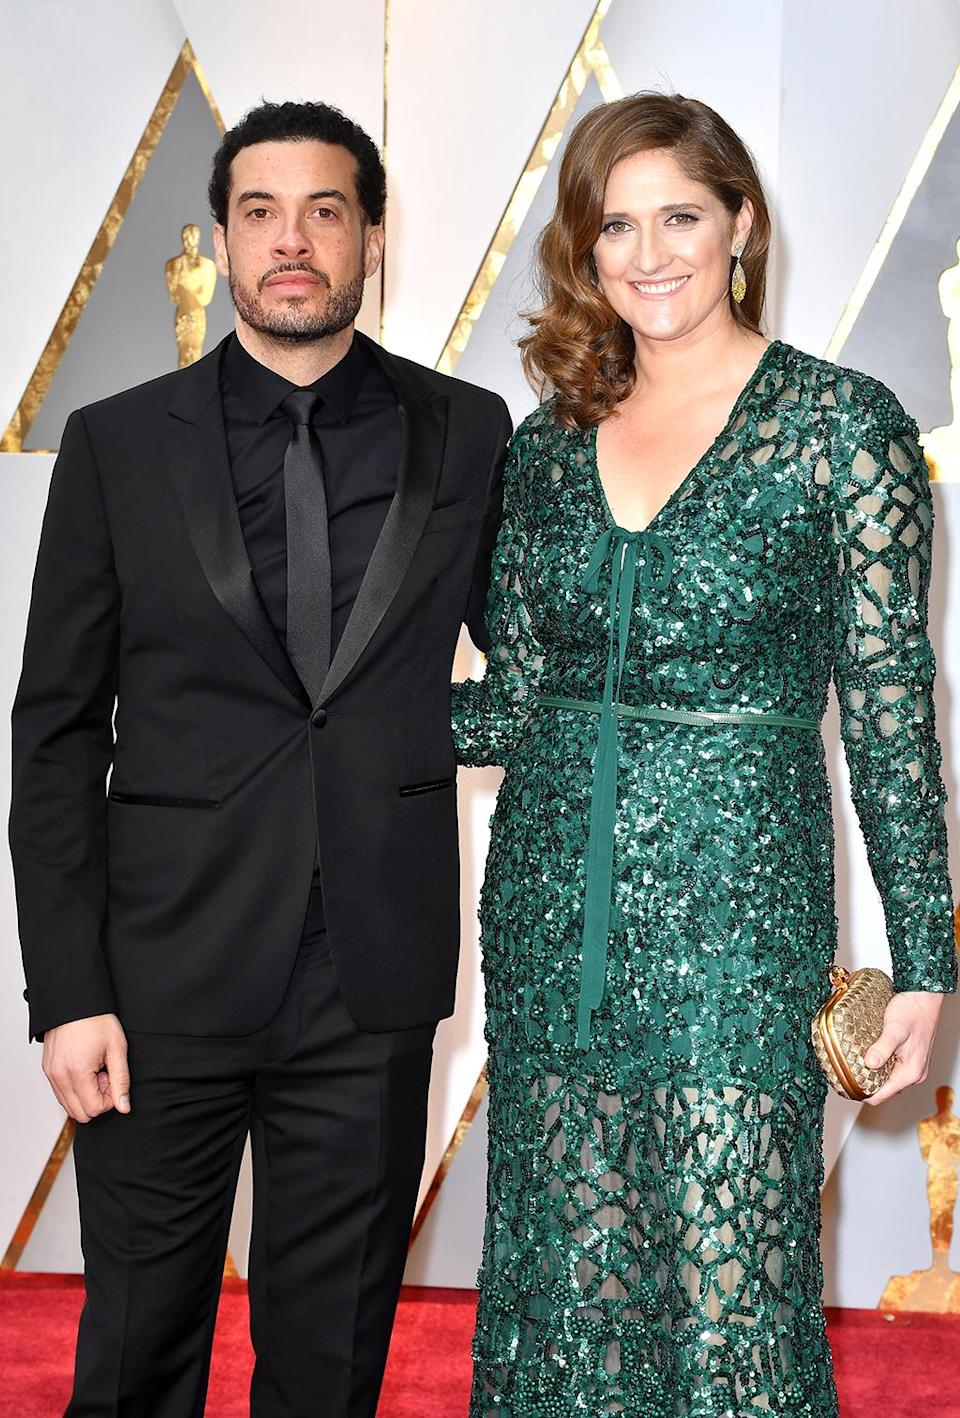 <p>Director Ezra Edelman and producer Caroline Waterlow attend the 89th Annual Academy Awards at Hollywood & Highland Center on February 26, 2017 in Hollywood, California. (Photo by Jeff Kravitz/FilmMagic) </p>